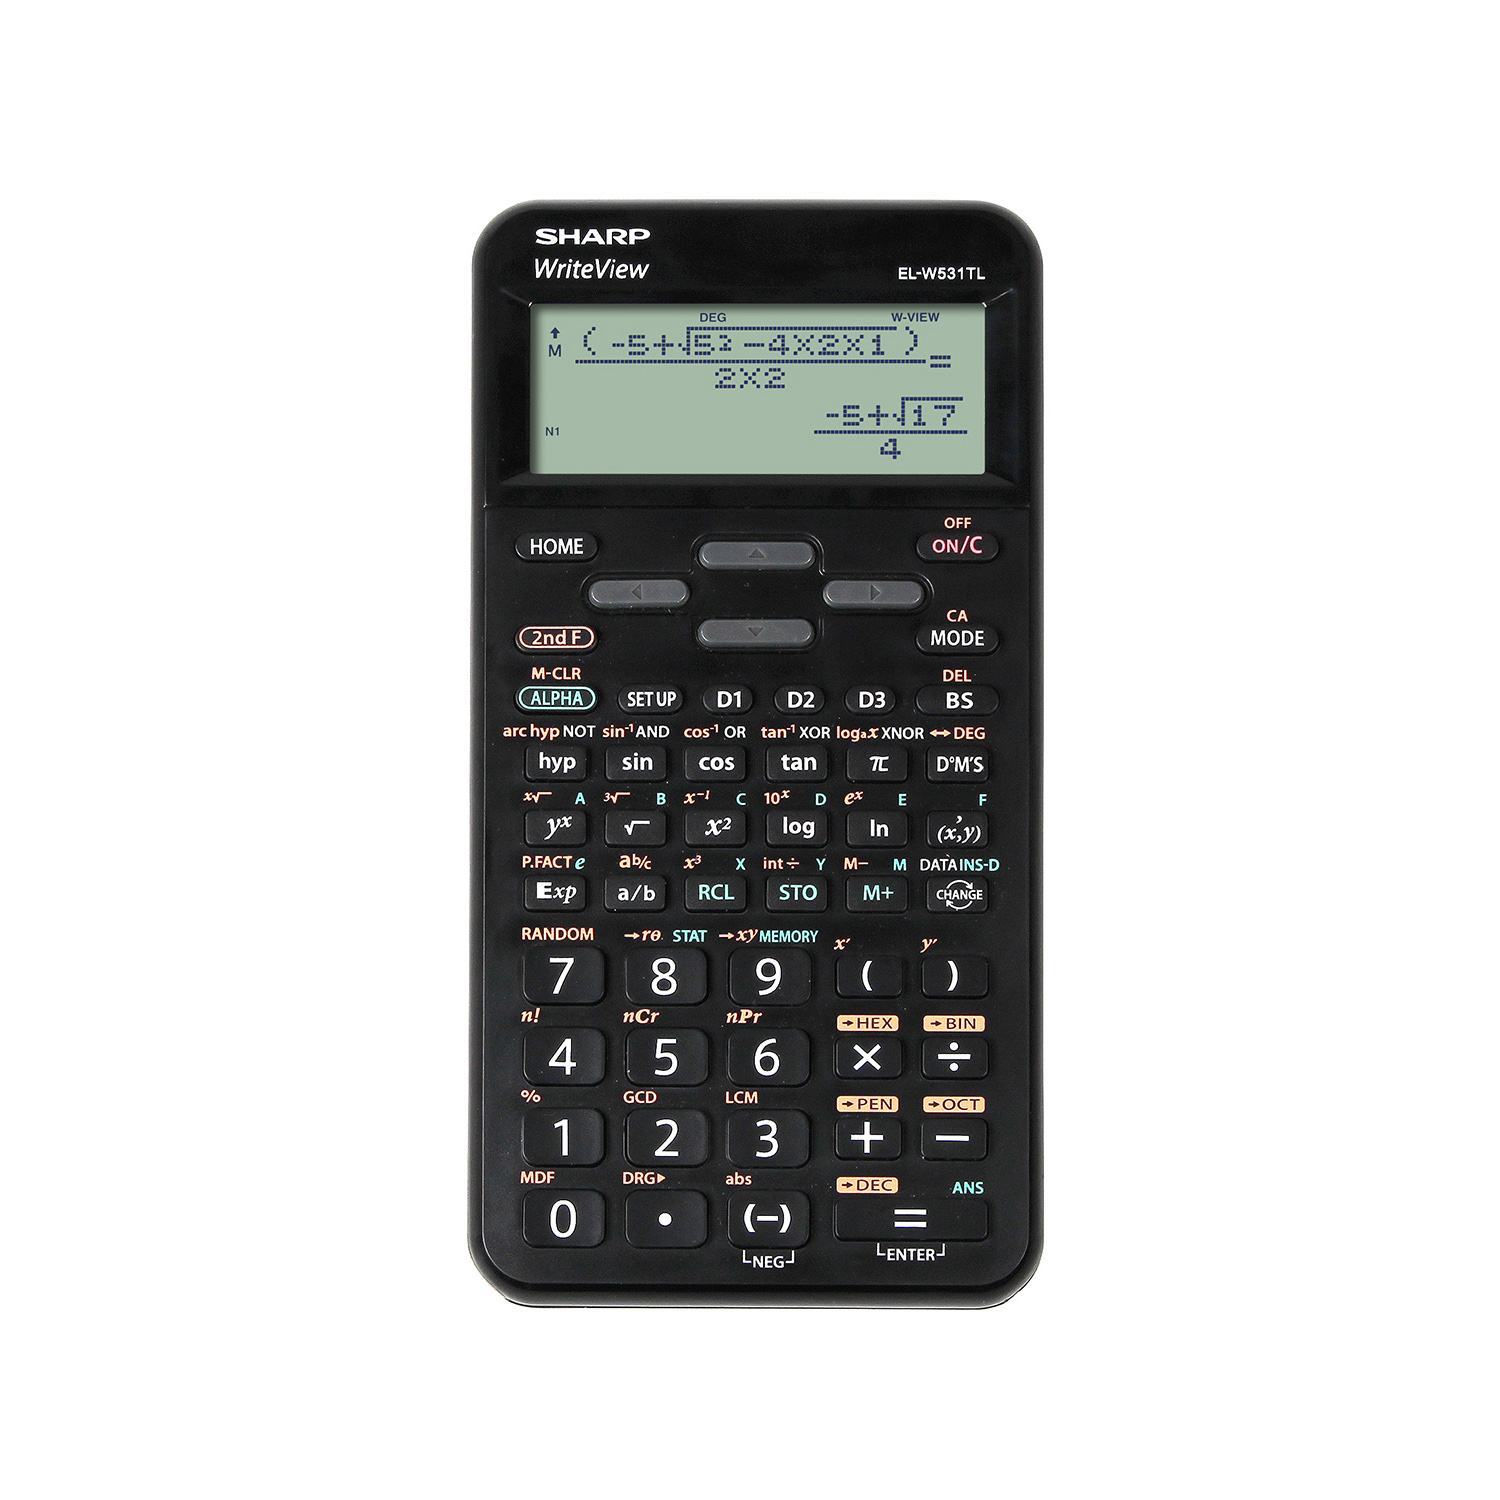 Sharp WriteView Scientific Calculator Dot Matrix Display 335 Functions 80x15x161mm Blk Ref SH-ELW531TLBBK